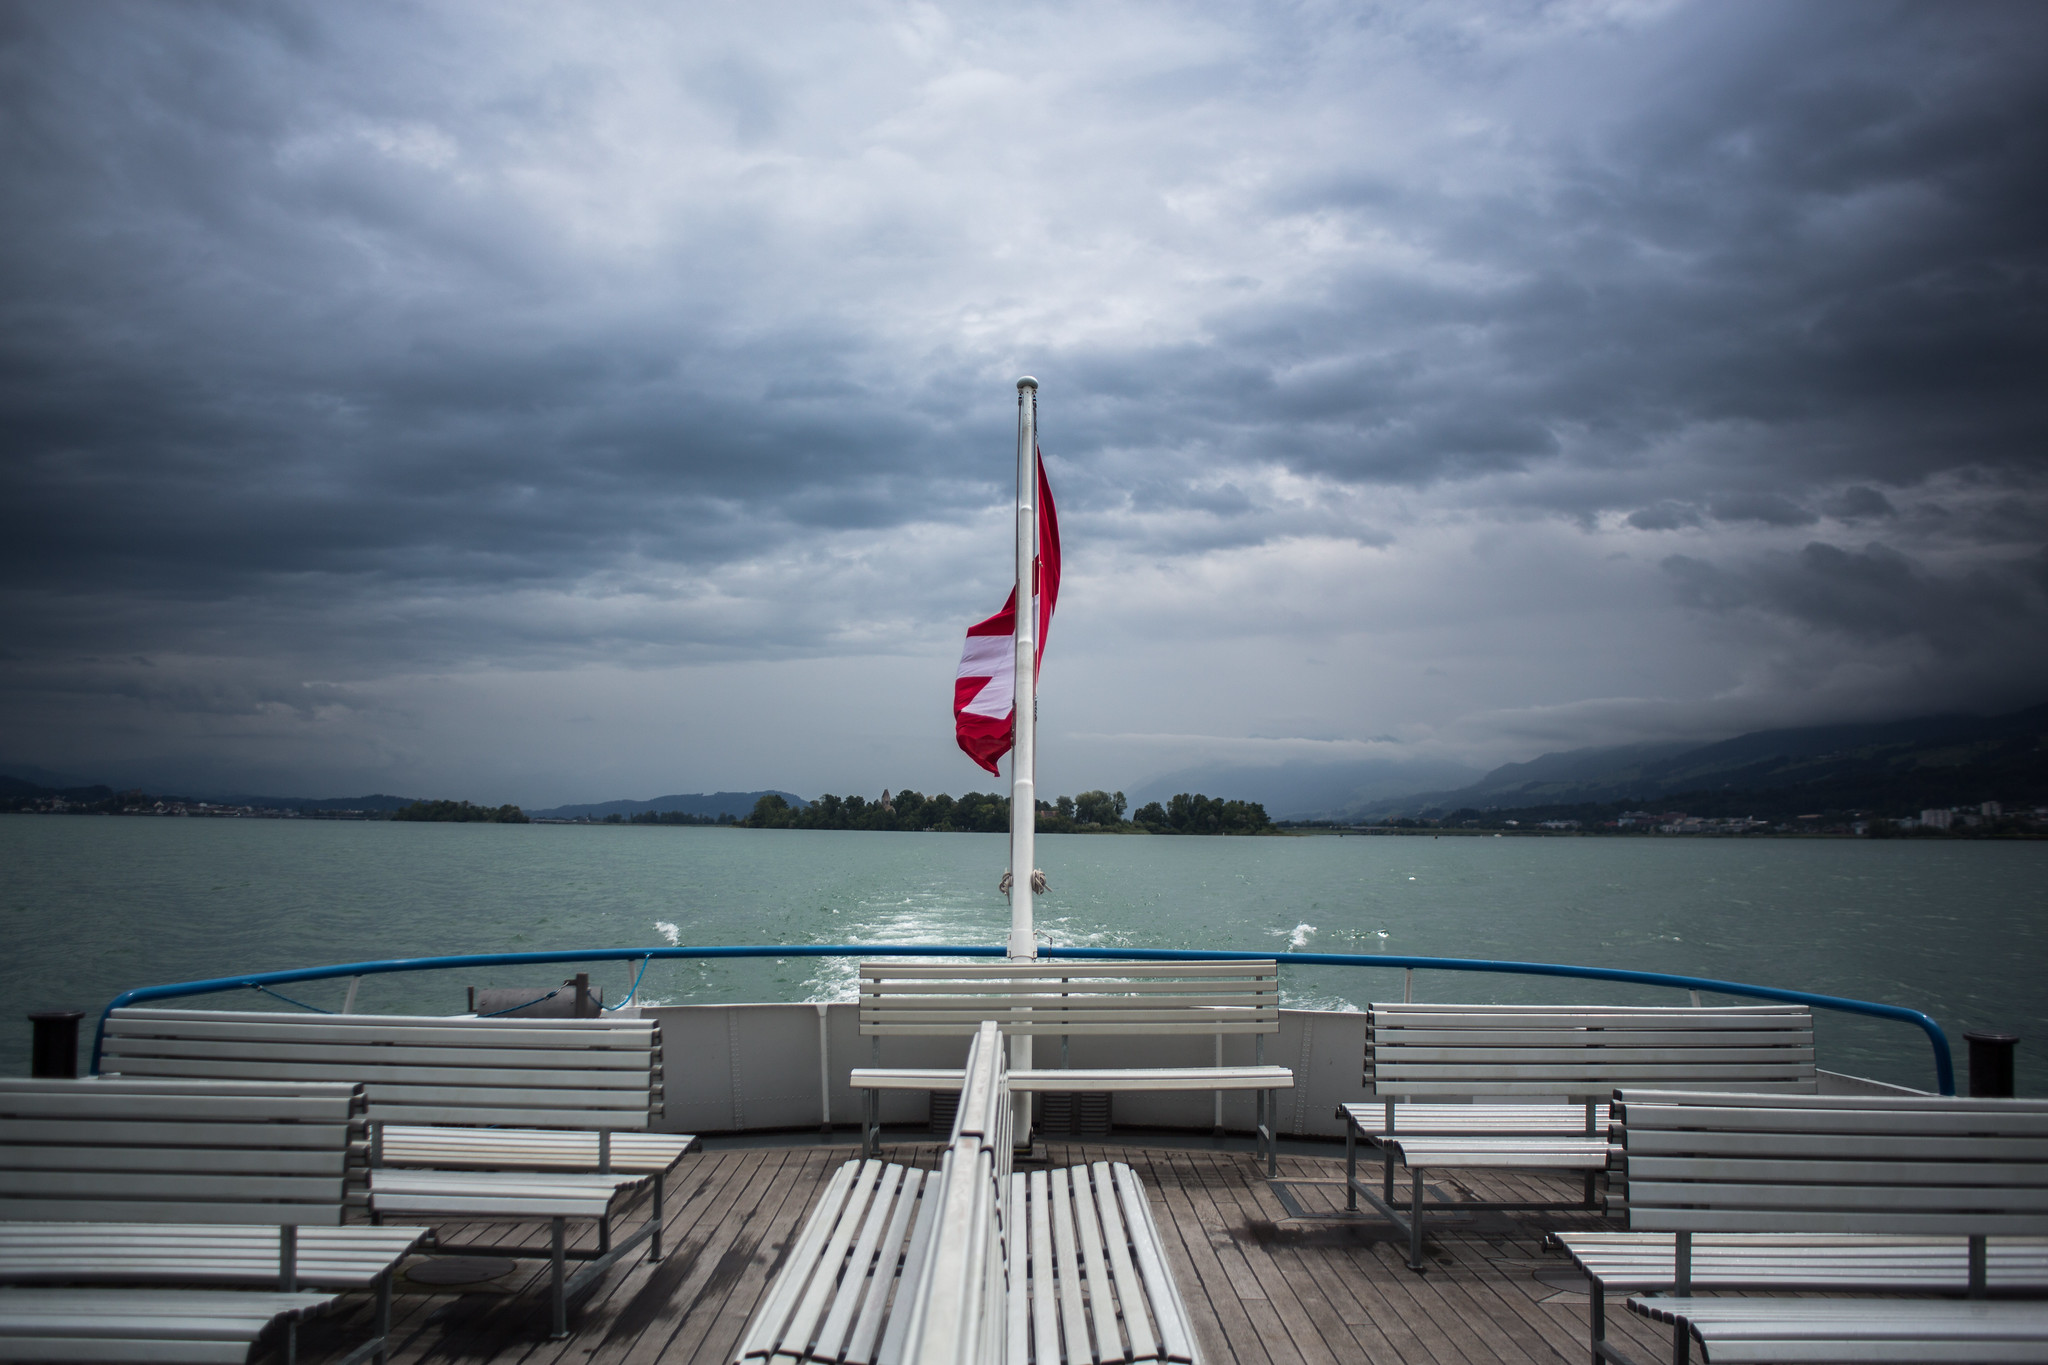 The Ferry from Rapperswil to Zürich